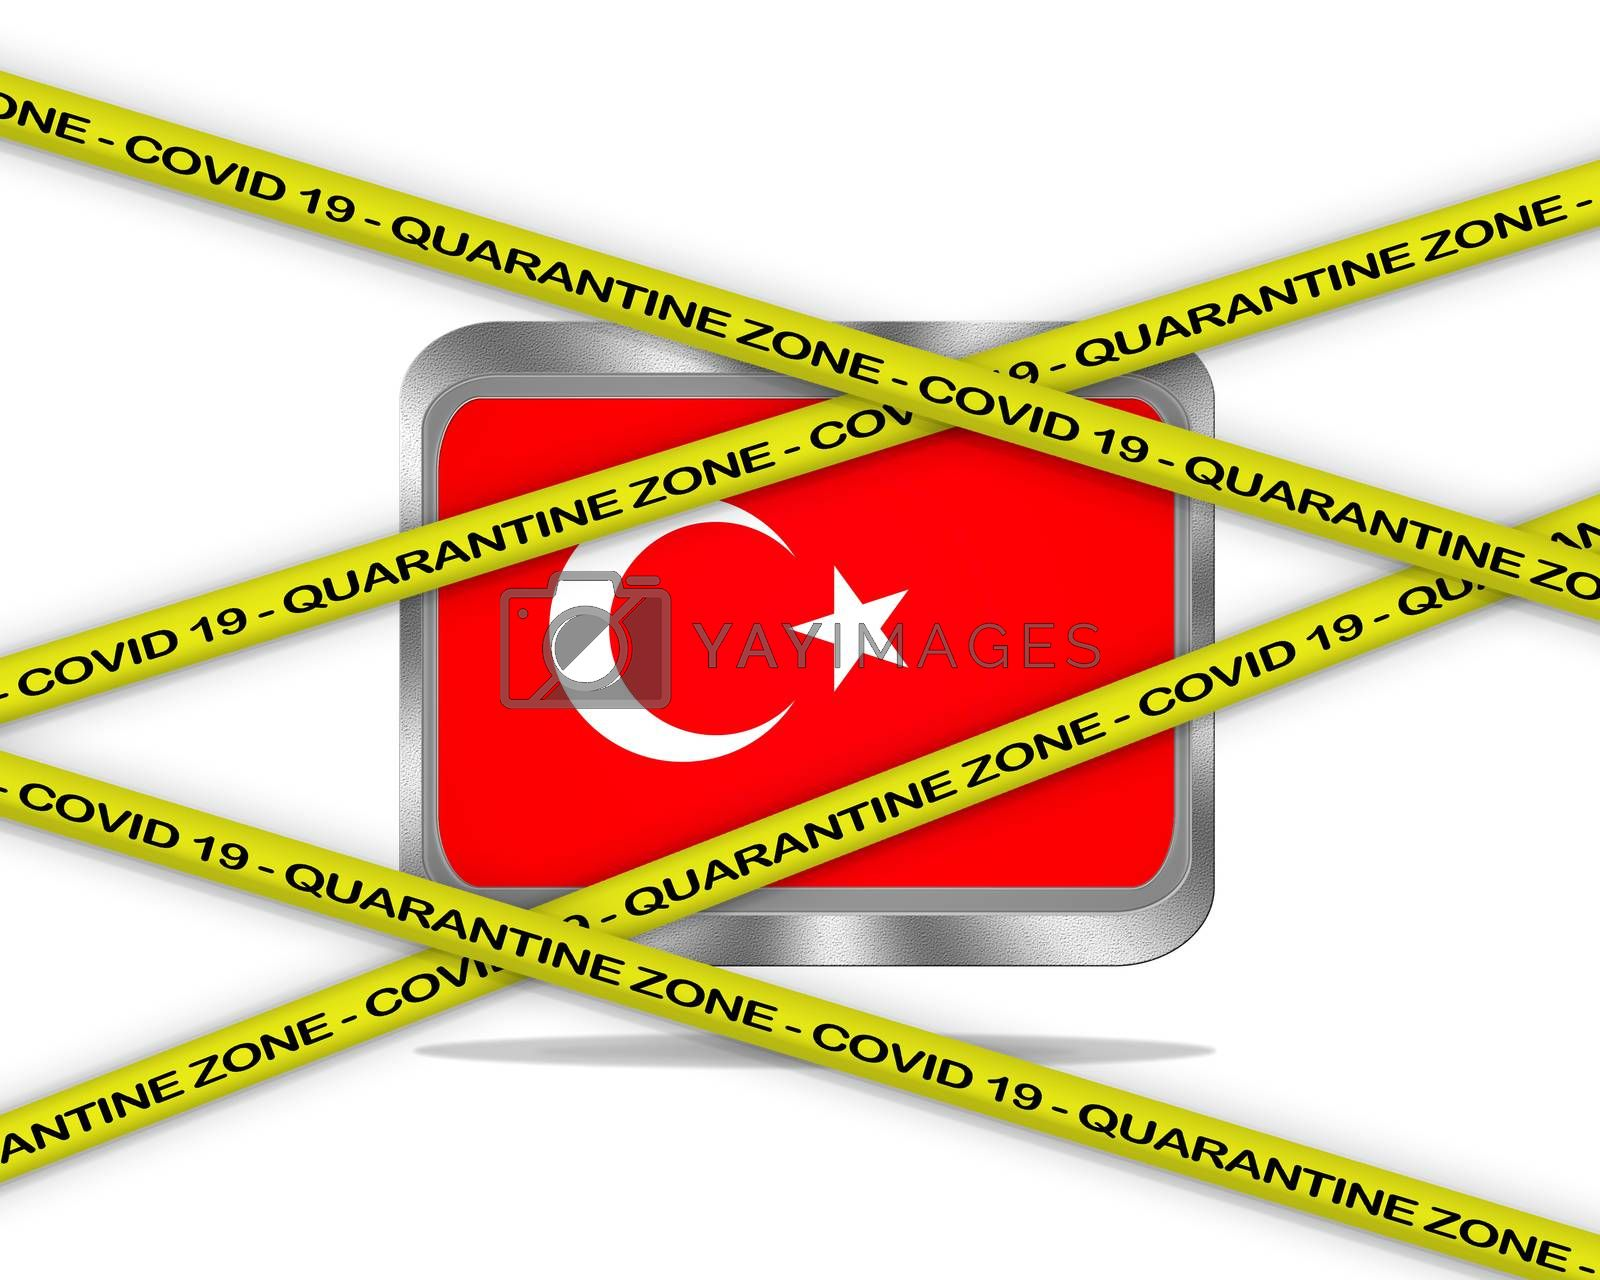 COVID-19 warning yellow ribbon written with: Quarantine zone Cover 19 on Turkey flag illustration. Coronavirus danger area, quarantined country.